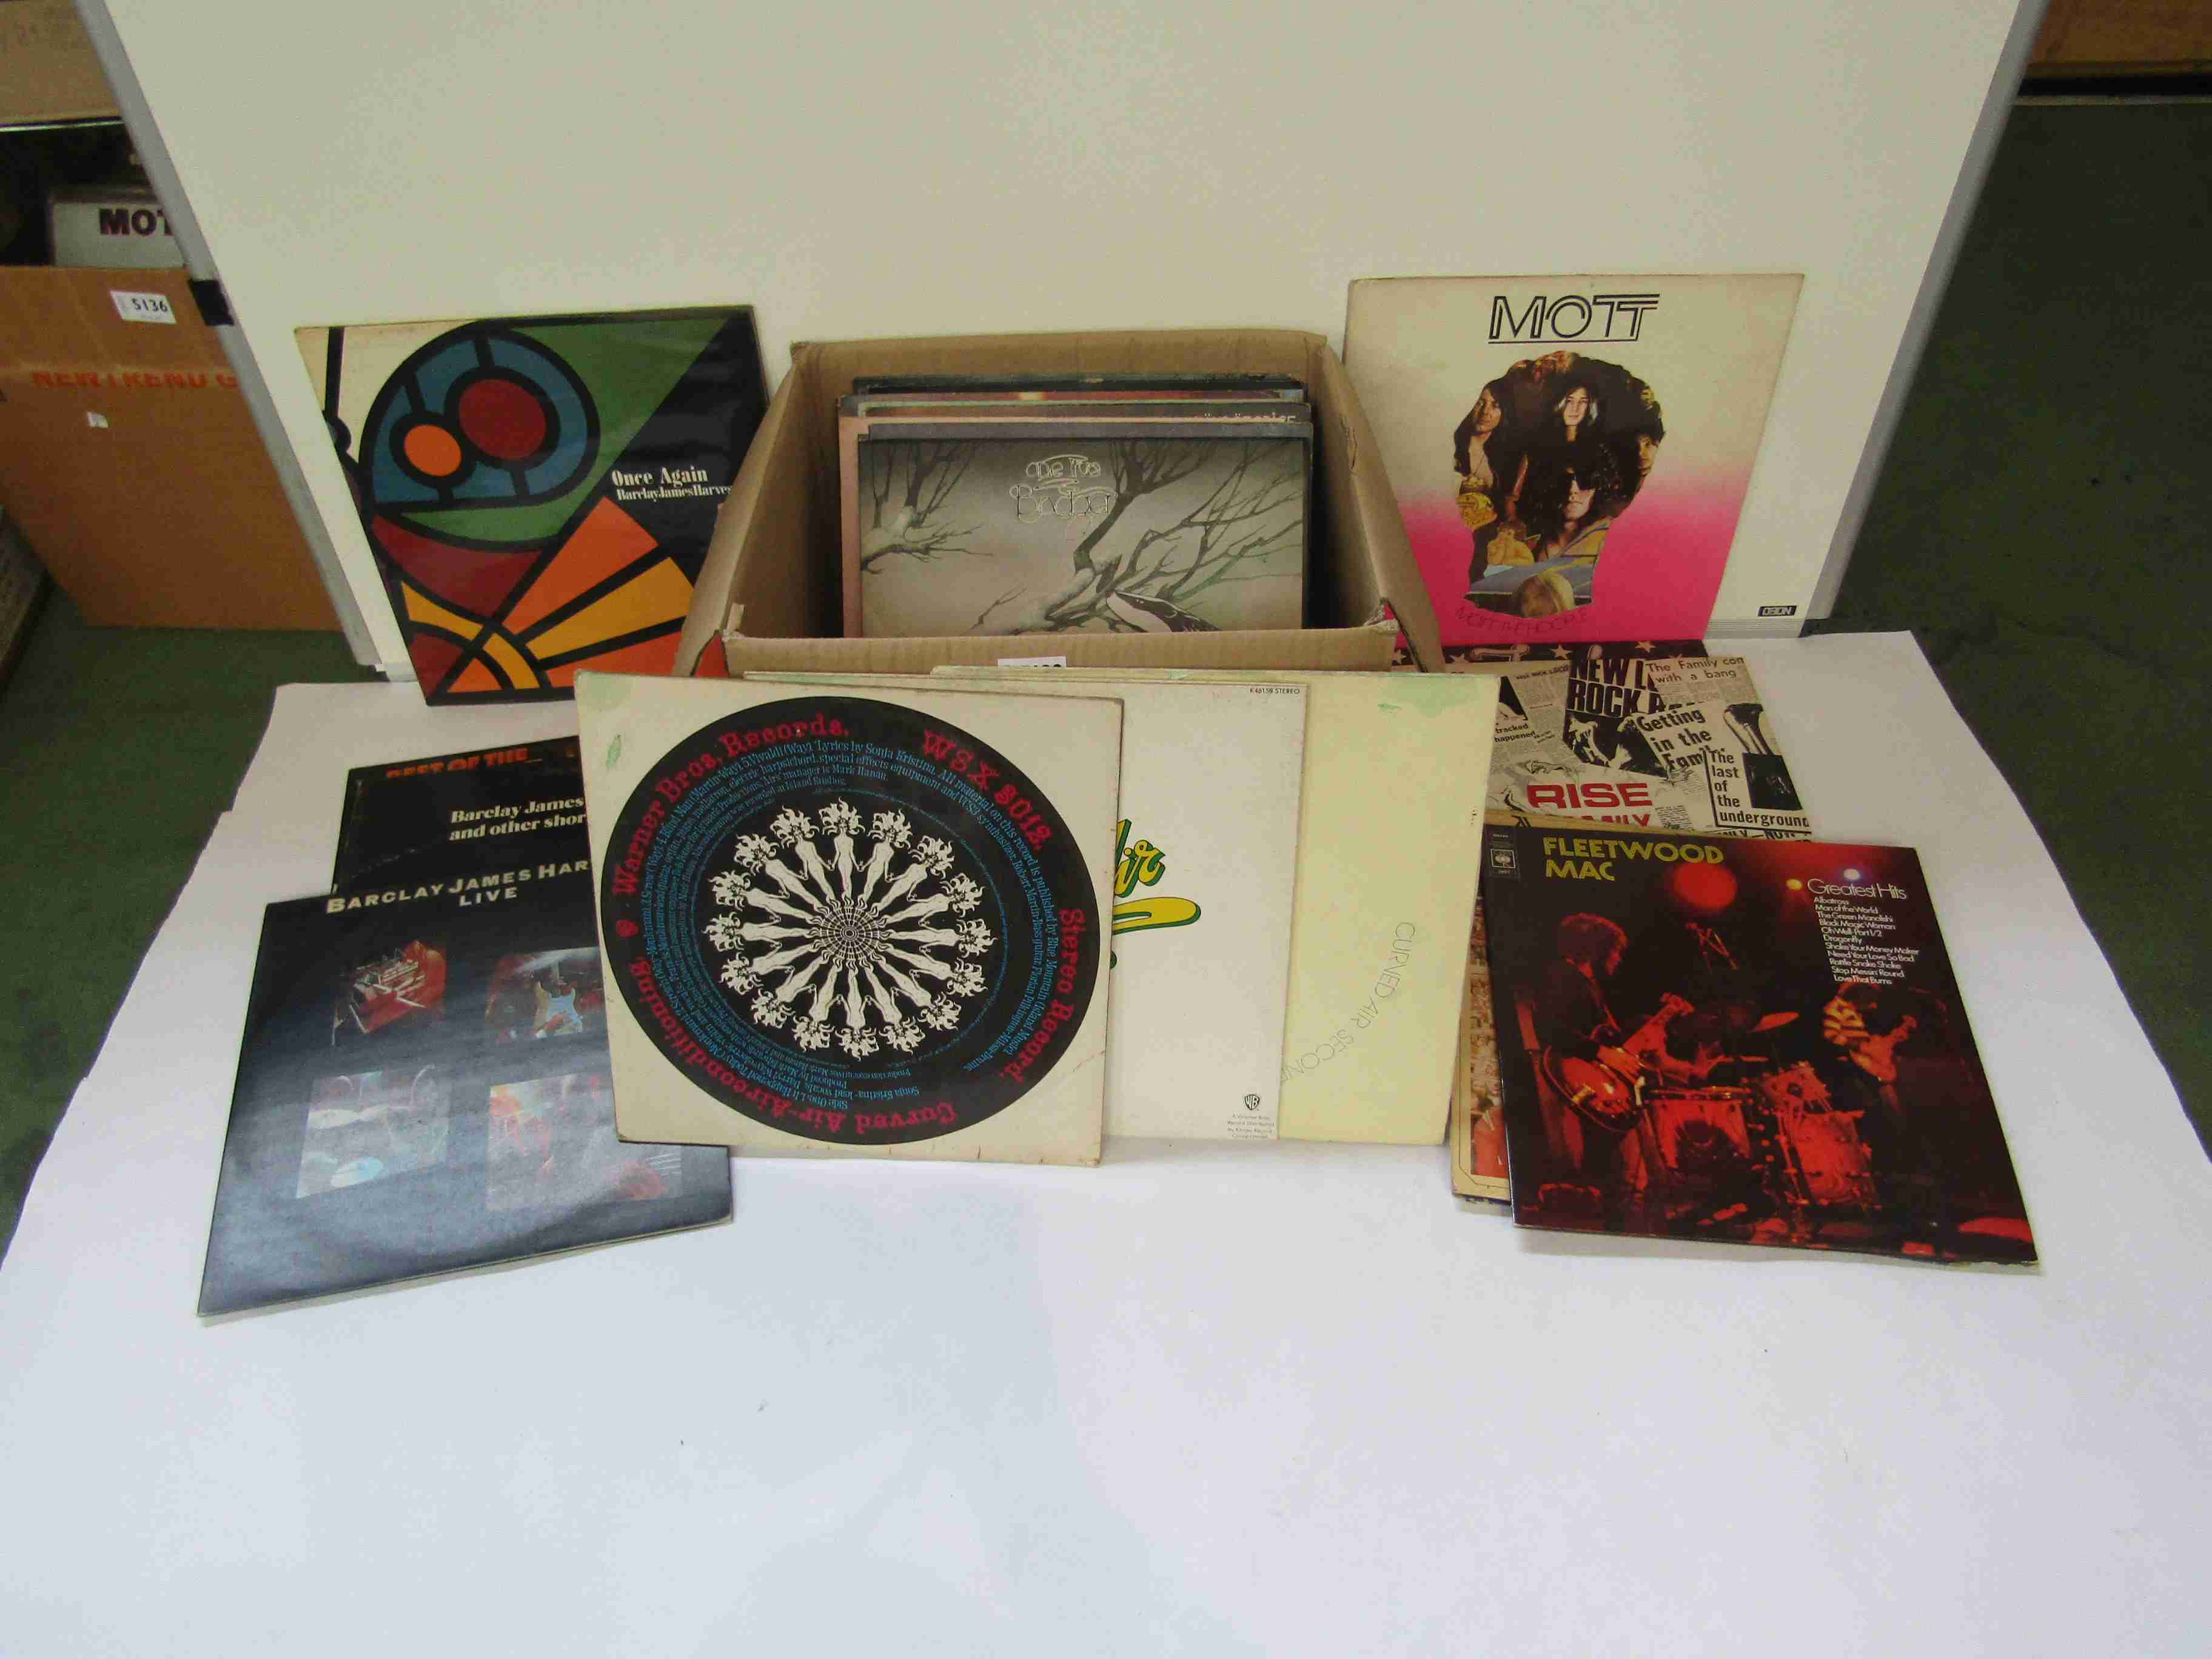 A collection of Prog Rock, Psychedelic Rock, Space Rock and other LPs including Hawkwind, Man,